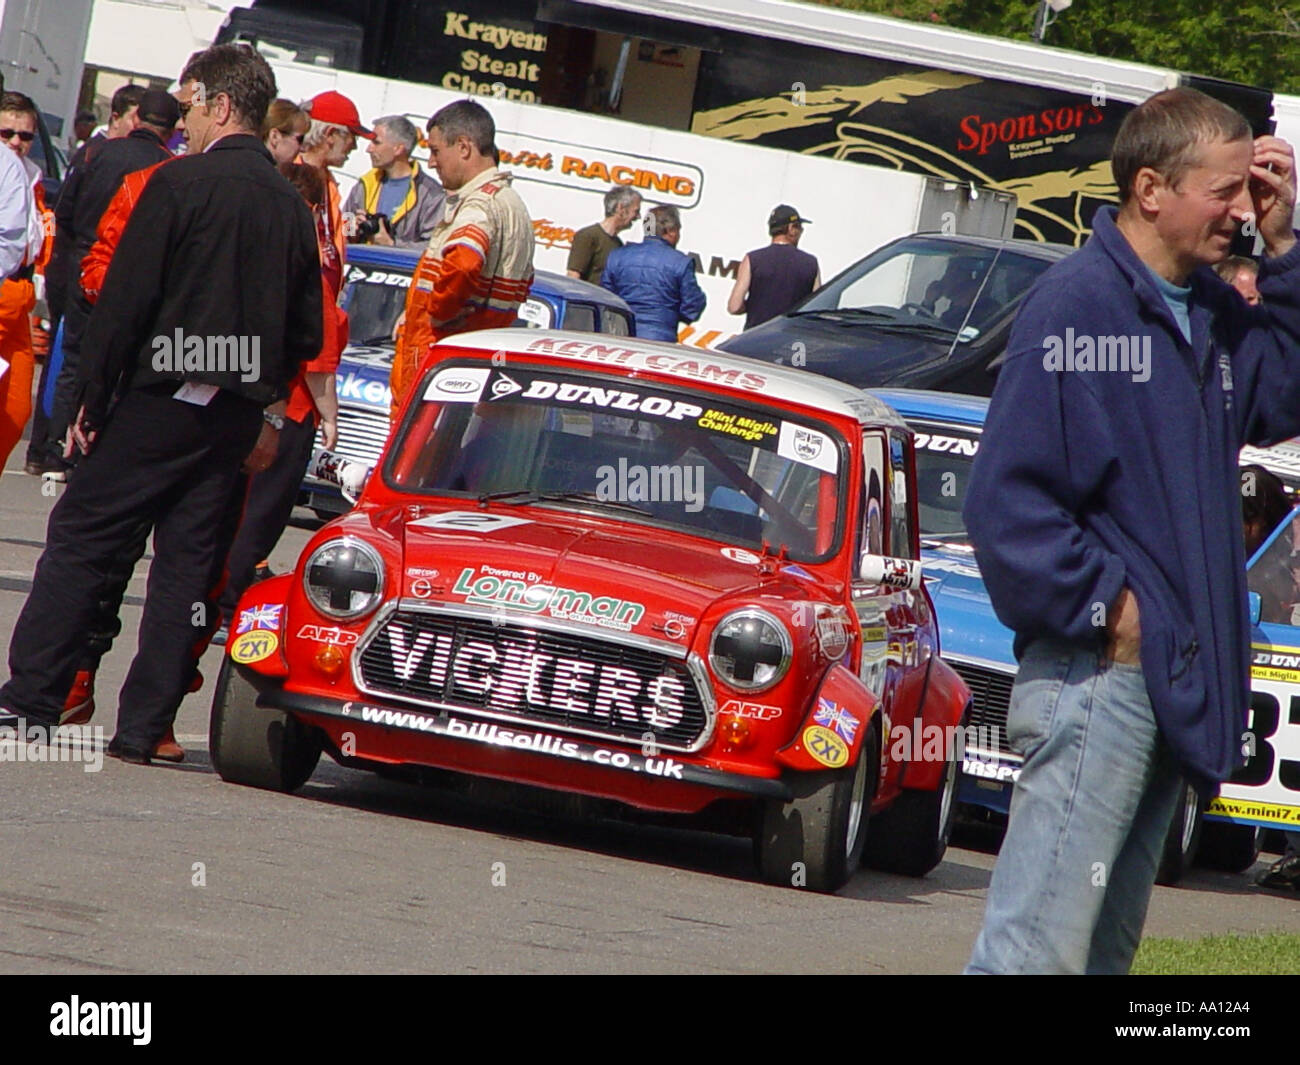 Motor racing cars England GB UK 2003 - Stock Image